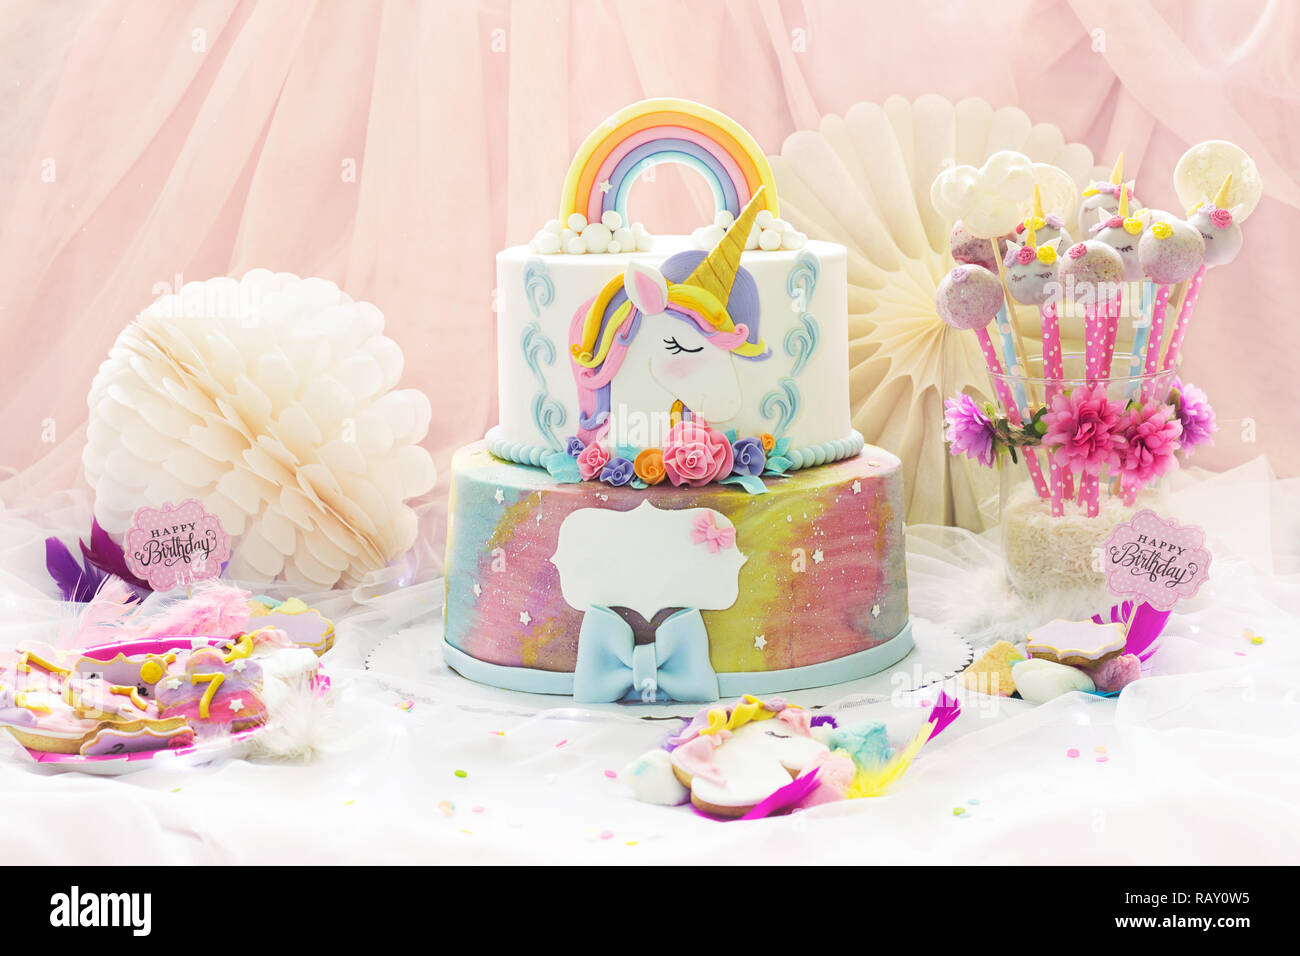 Little Girl S Birthday Party Dessert Table With Unicorn